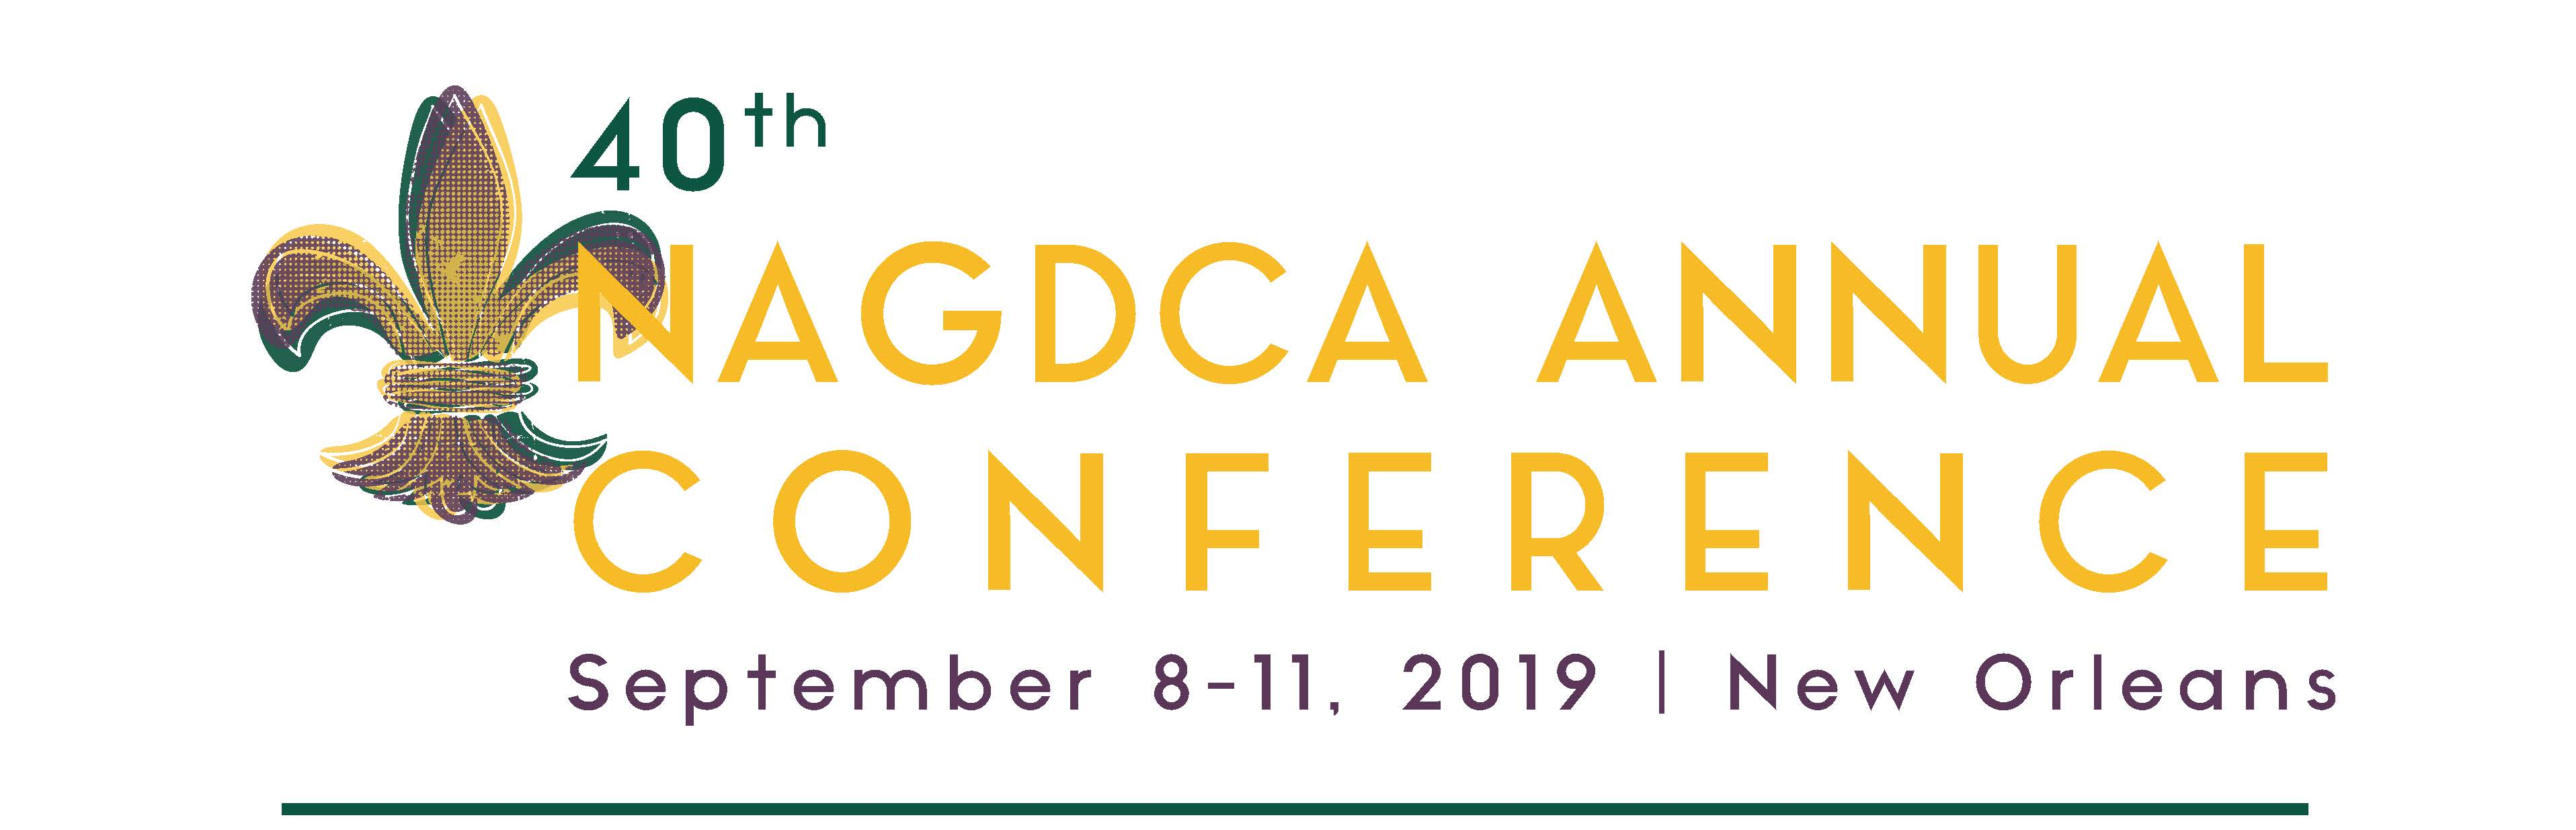 2019 NAGDCA Annual Conference